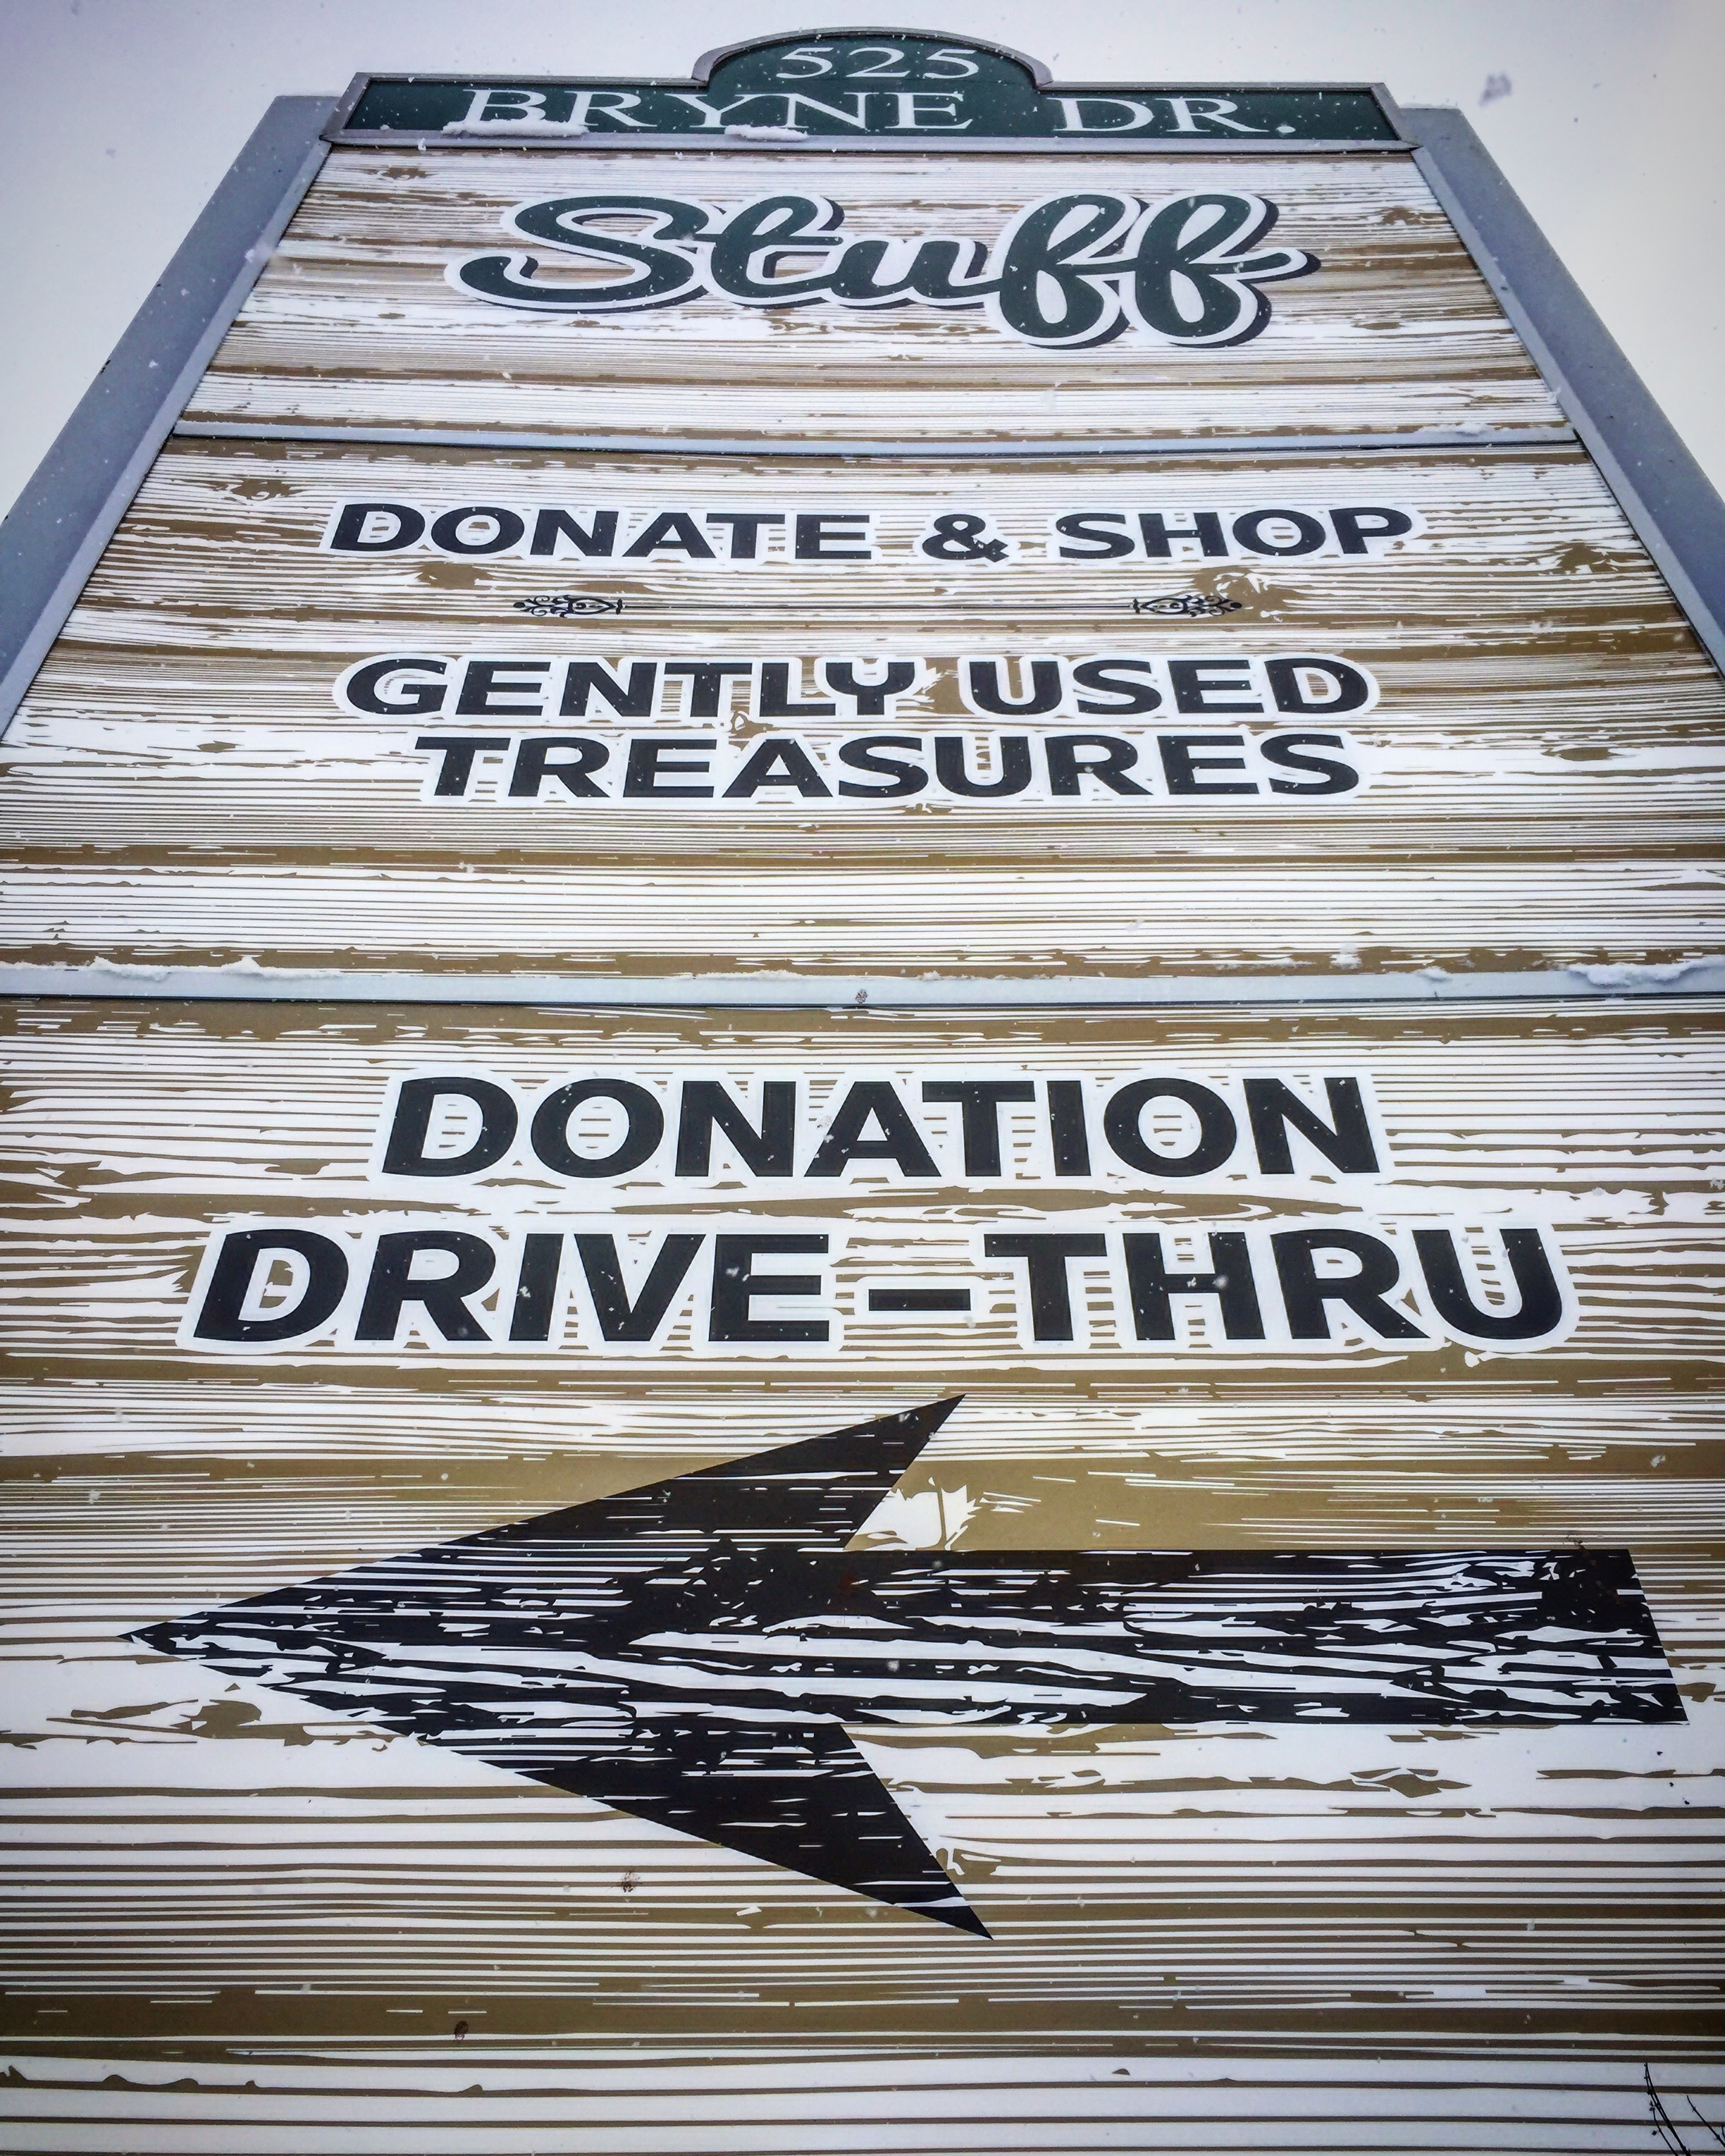 StuffShoppe | Gently Used Treasures